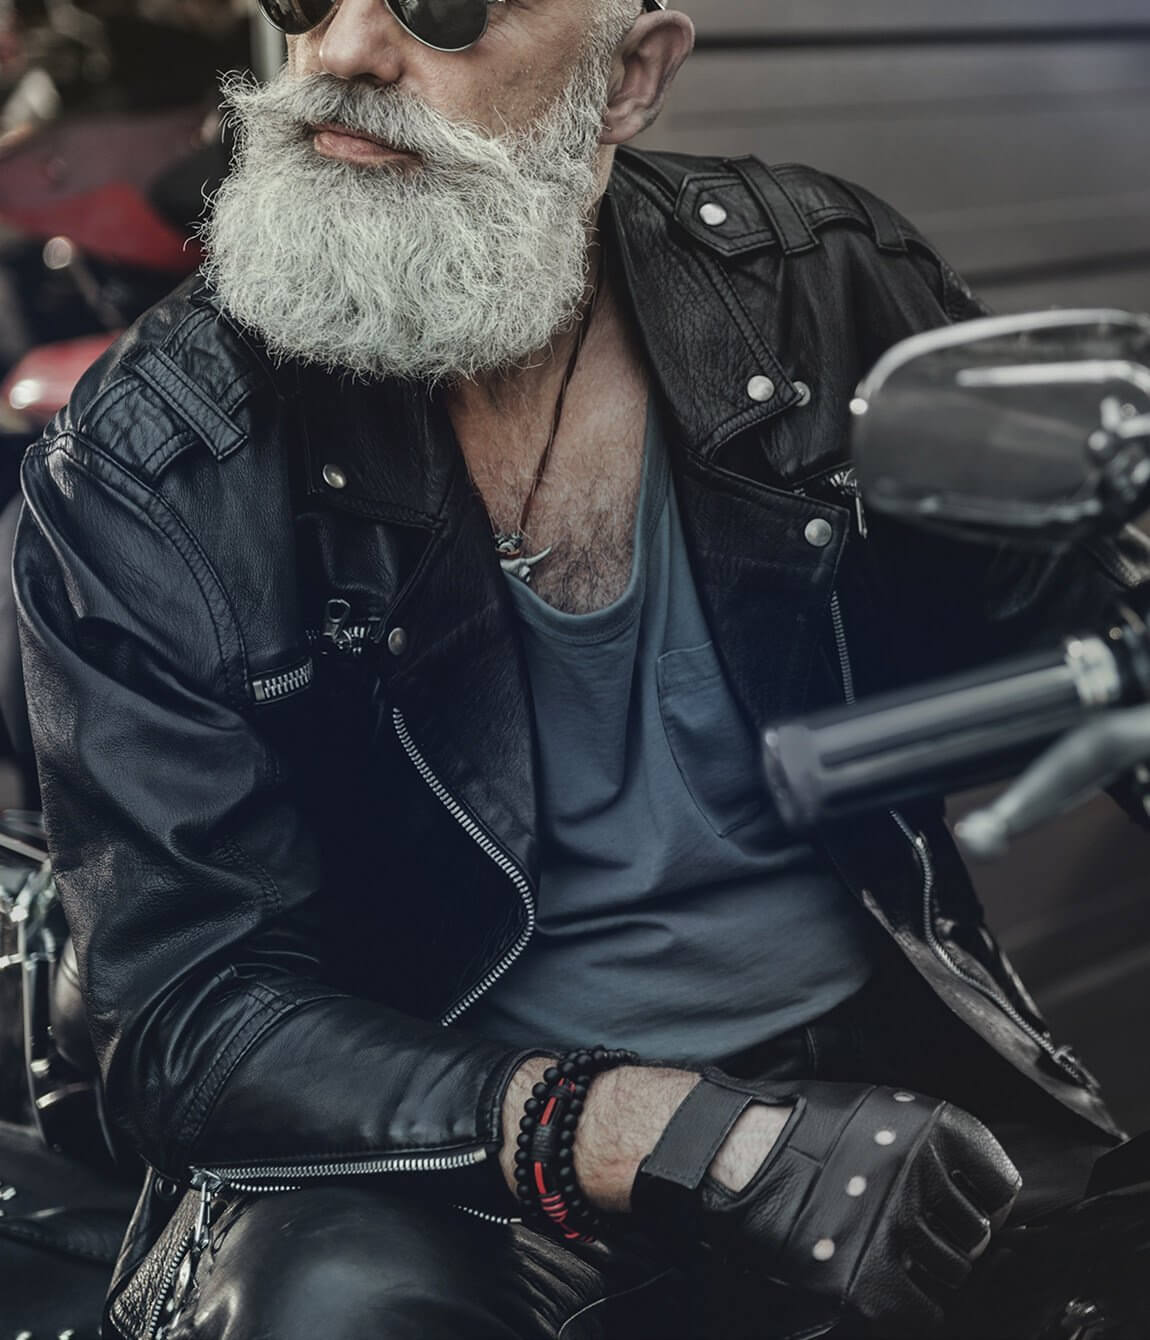 Leatherup Com Motorcycle Gear Biker Apparel And Leather